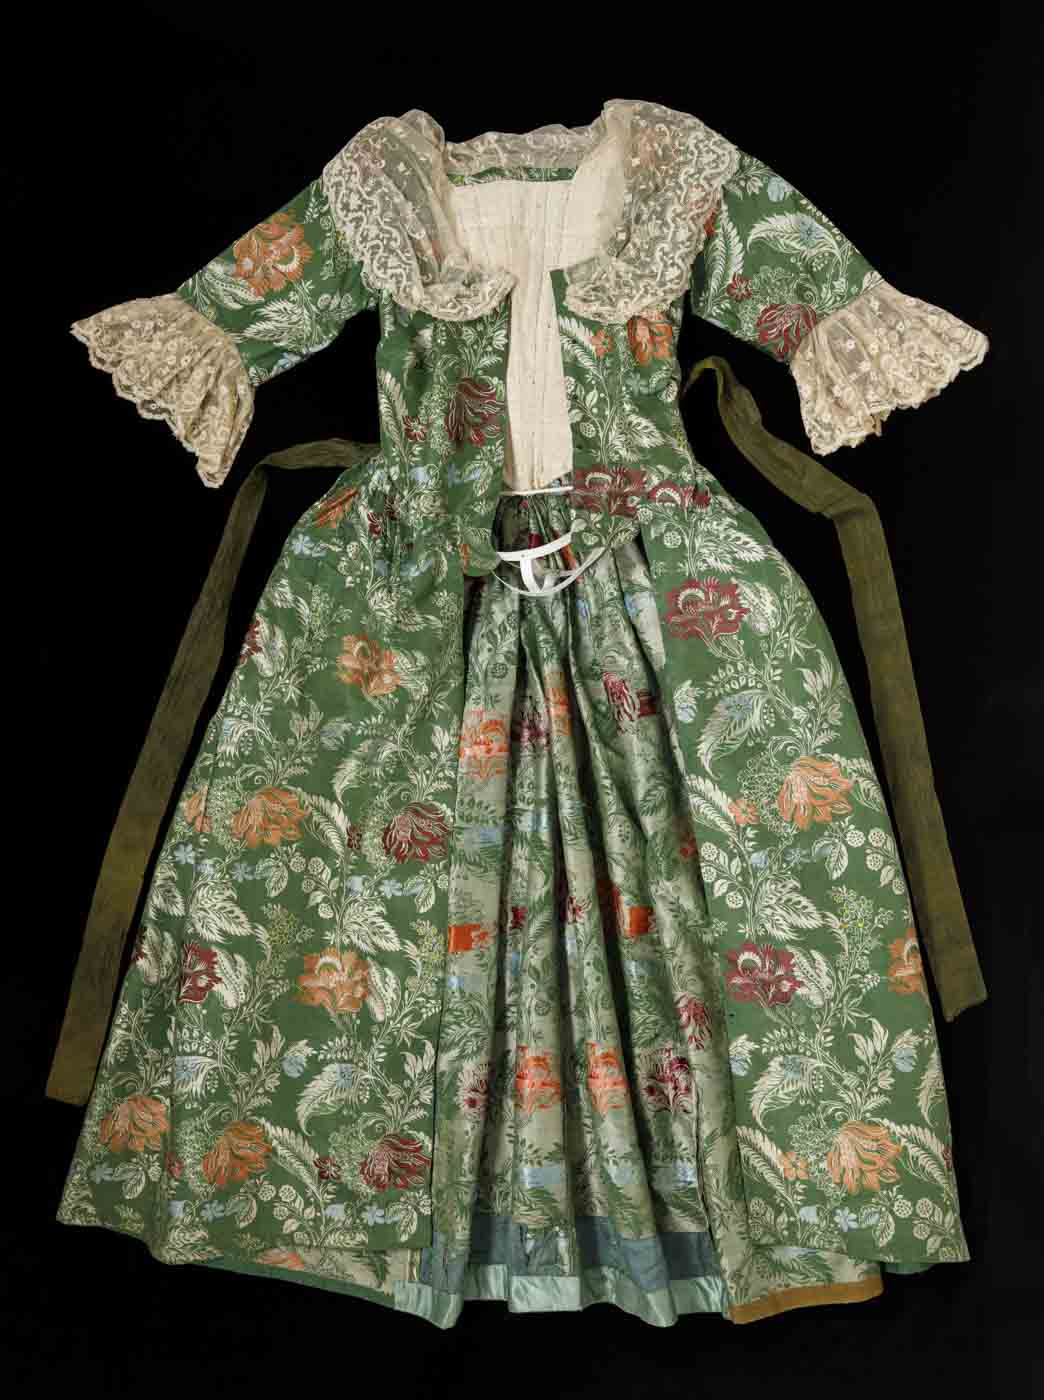 Green and floral brocade open-front gown with lace trim. - click to view larger image